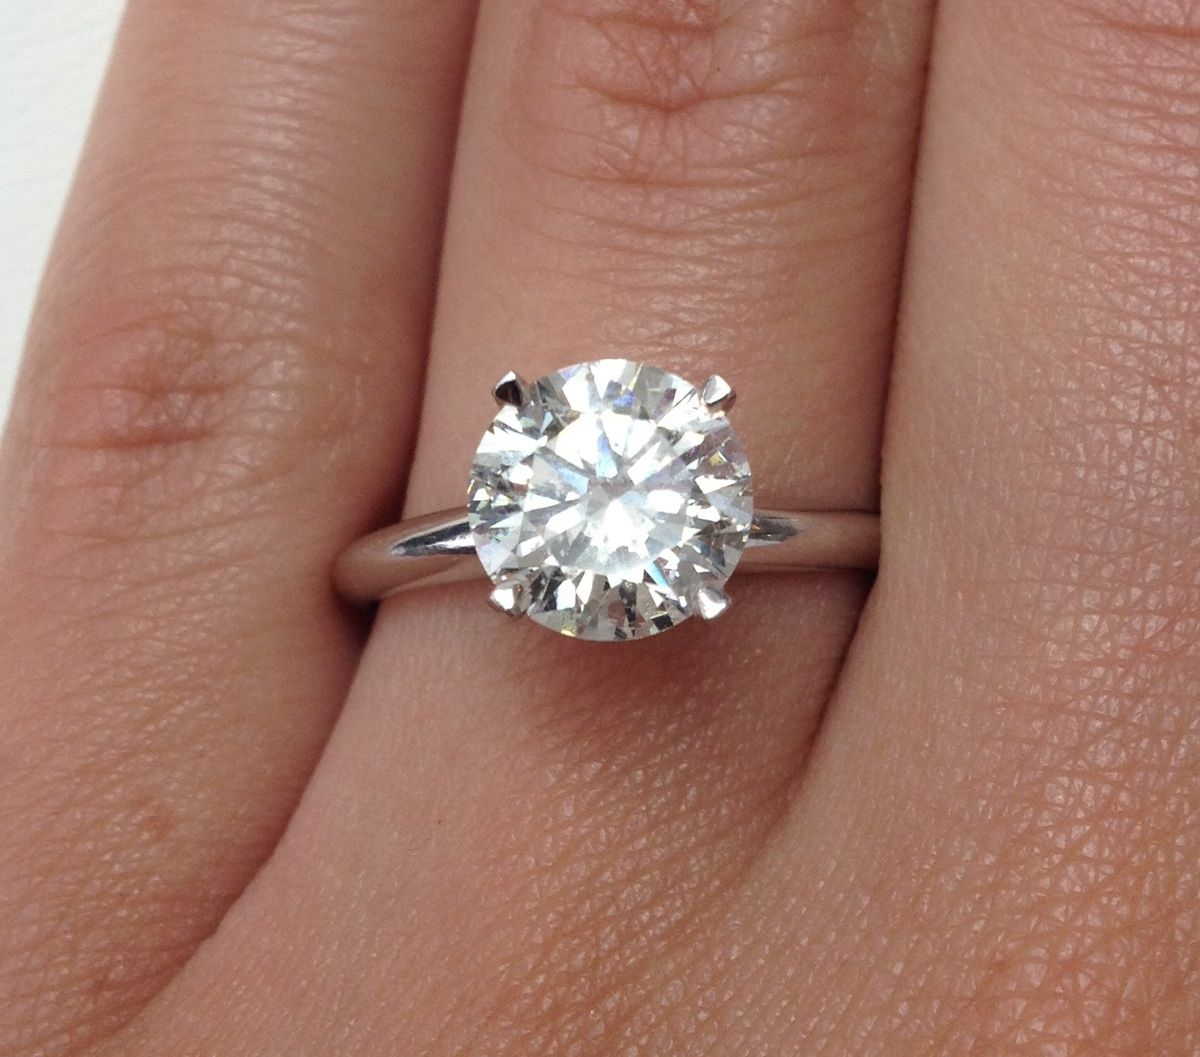 Find This Pin And More On Jewelry  Rings The Most Popular Diamond  Engagement Rings Are Round